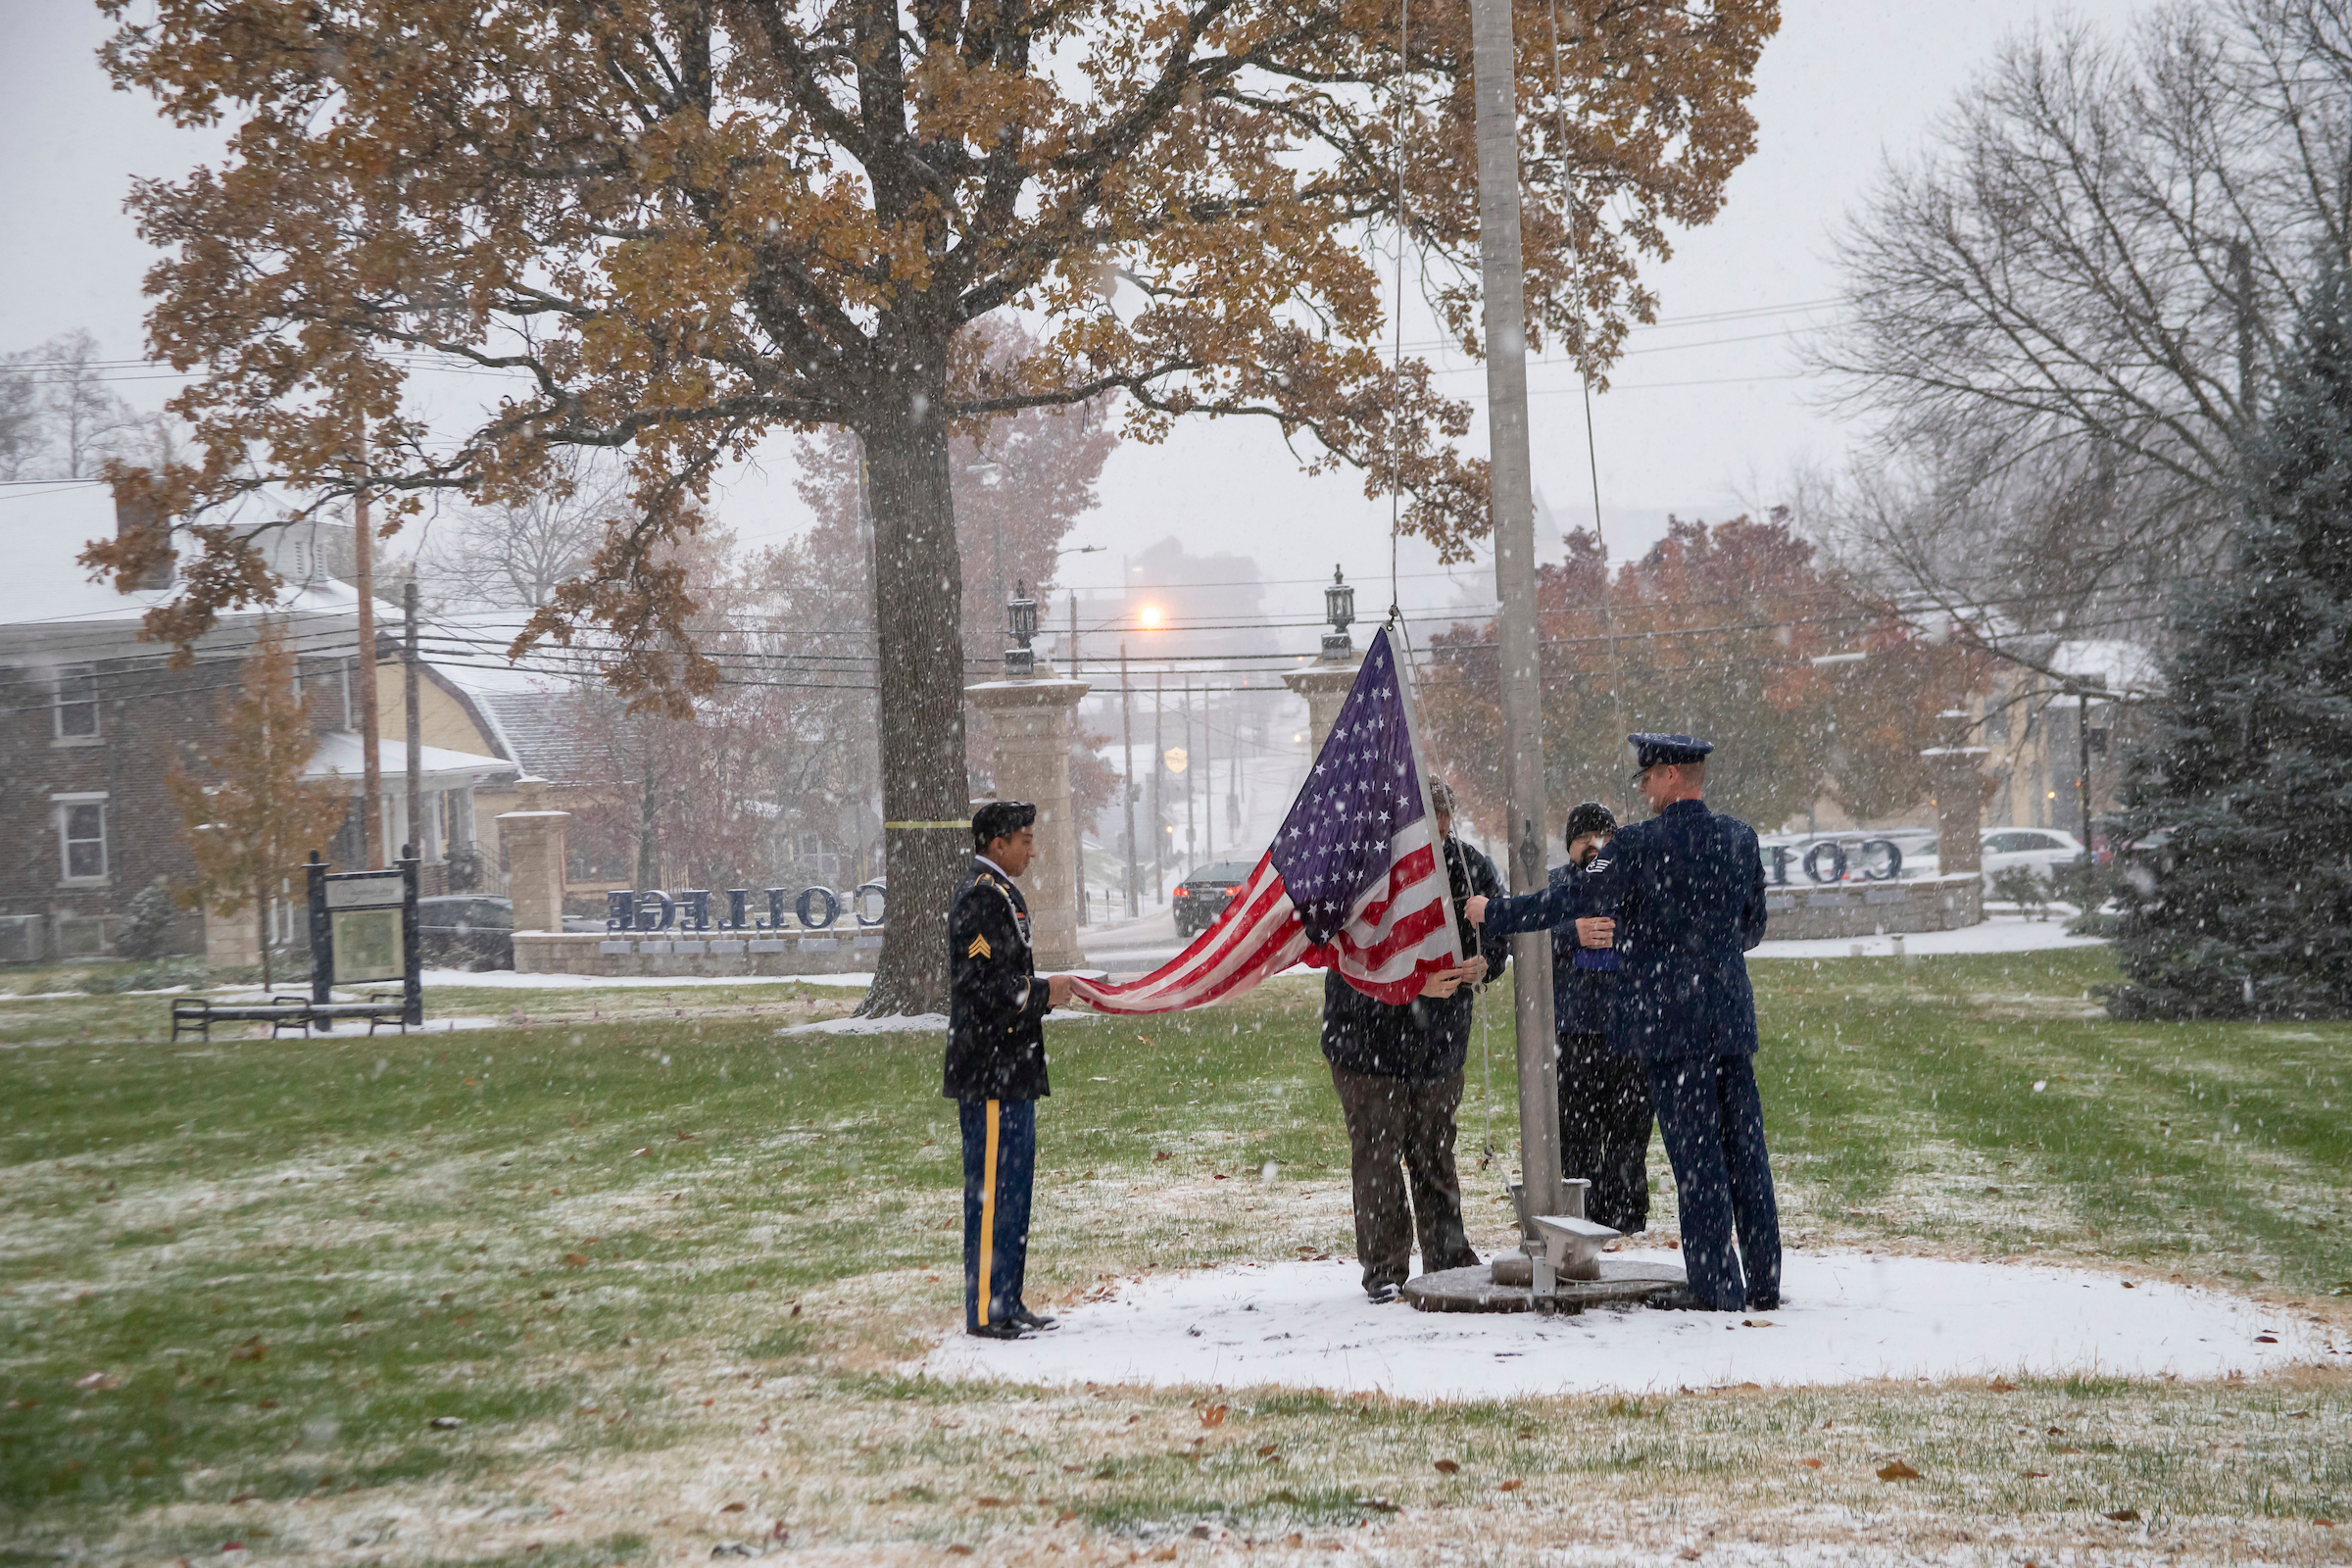 Honor Guard raising the American flag on Bass Commons